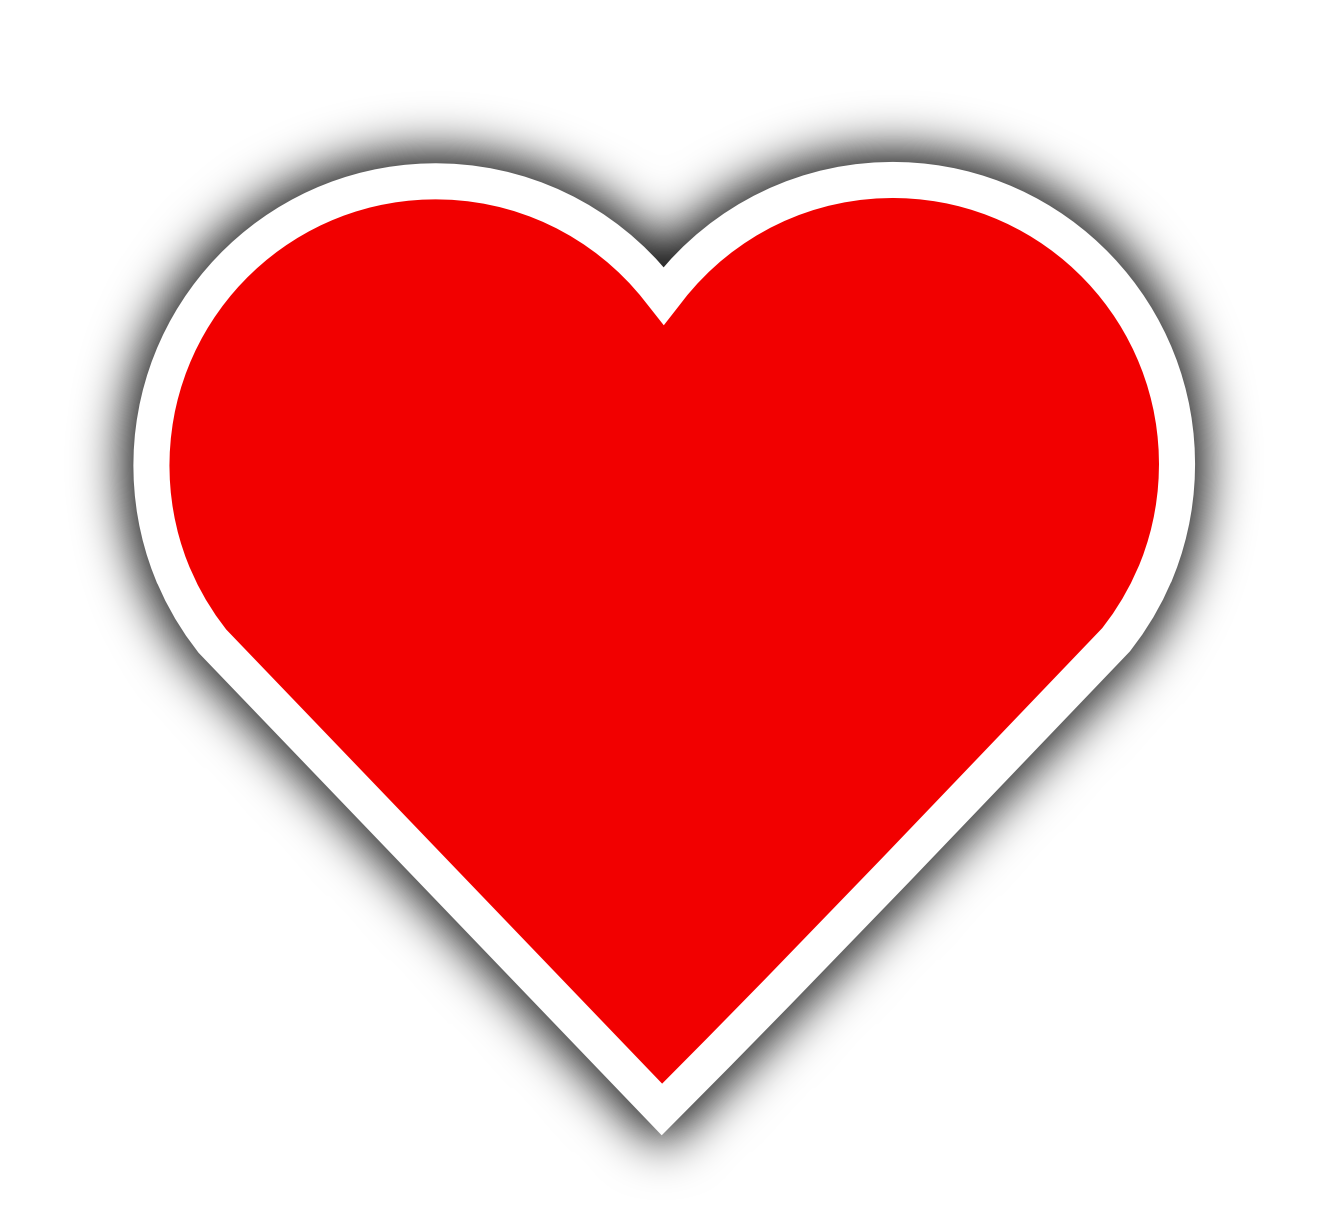 Red Heart File PNG Image